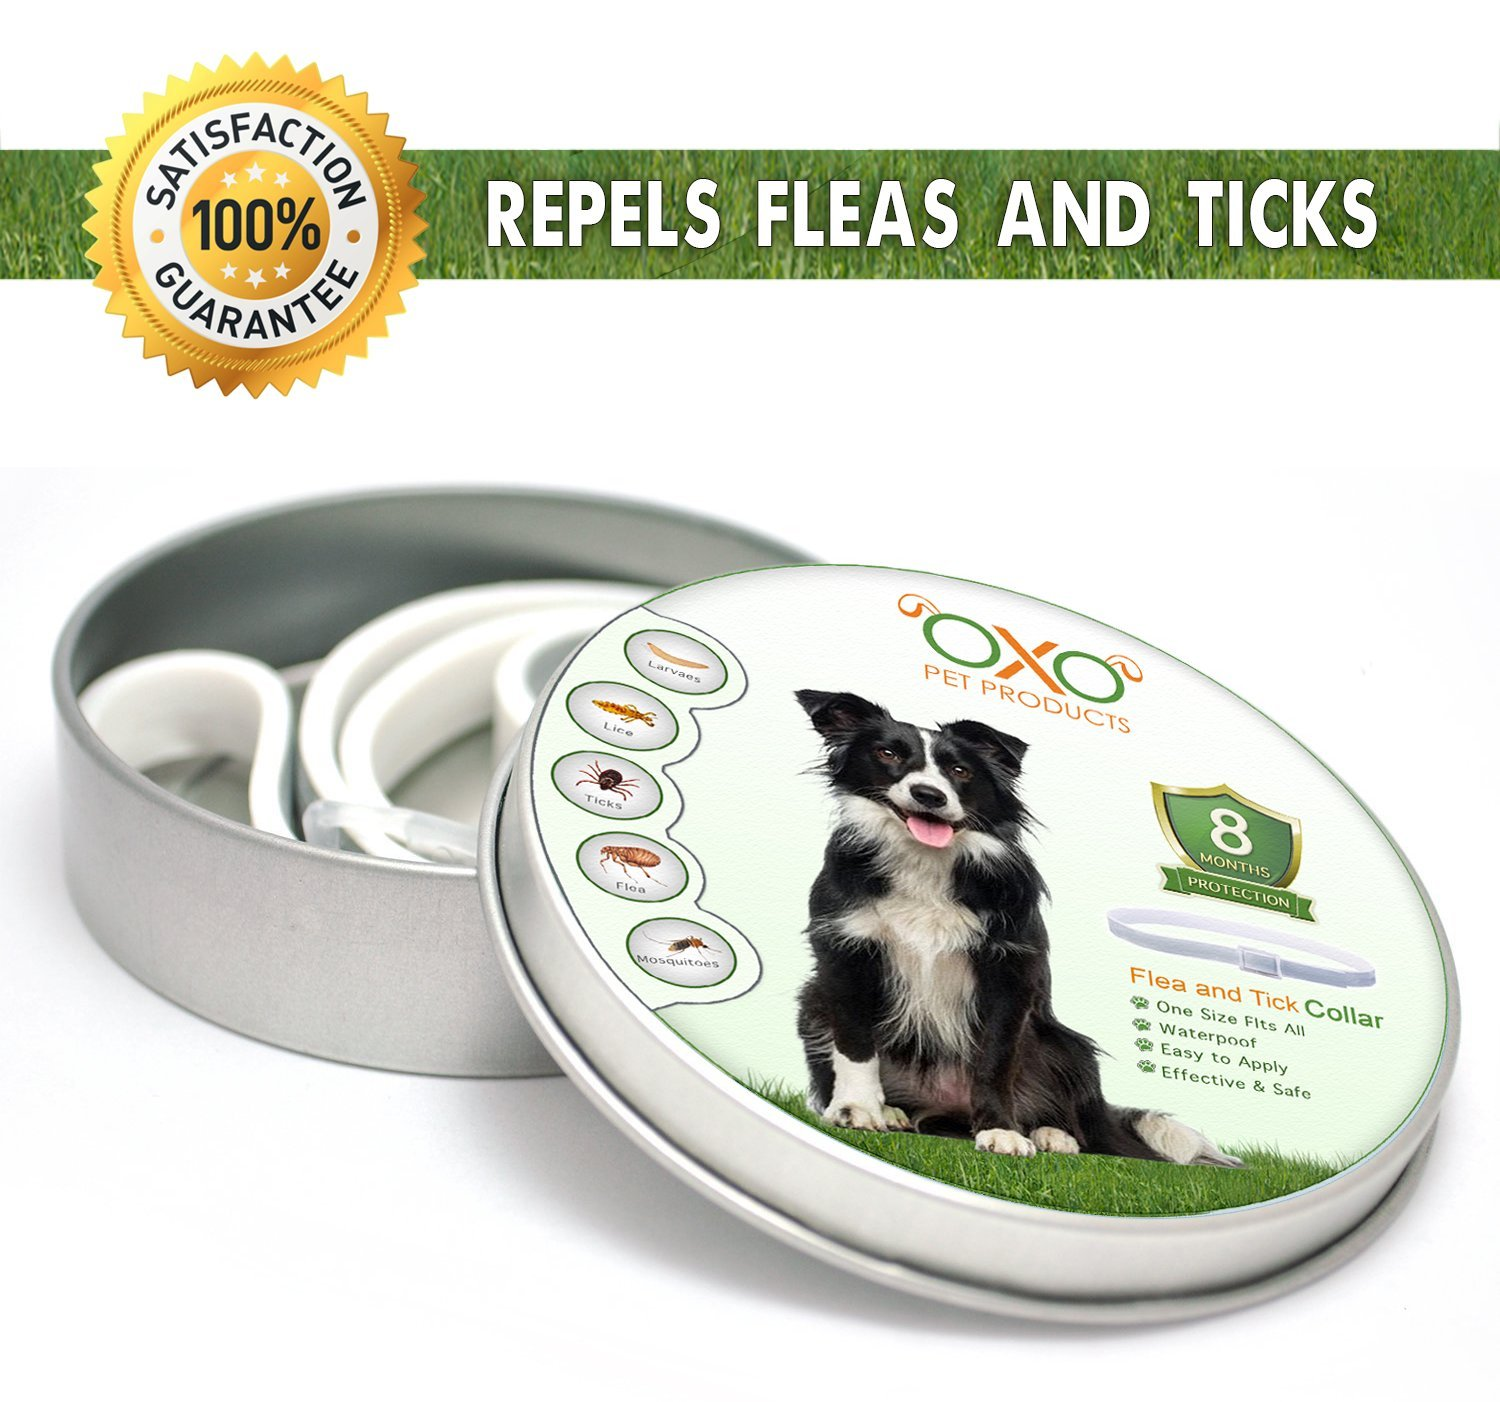 OXO PET PRODUCTS Tick and Flea Collar For Dogs. Natural Repellent With Essential Oils.''8 Months Protection''.BEST Natural Pest Solution For Dogs Of All Sizes and Ages. Waterproof, 25''